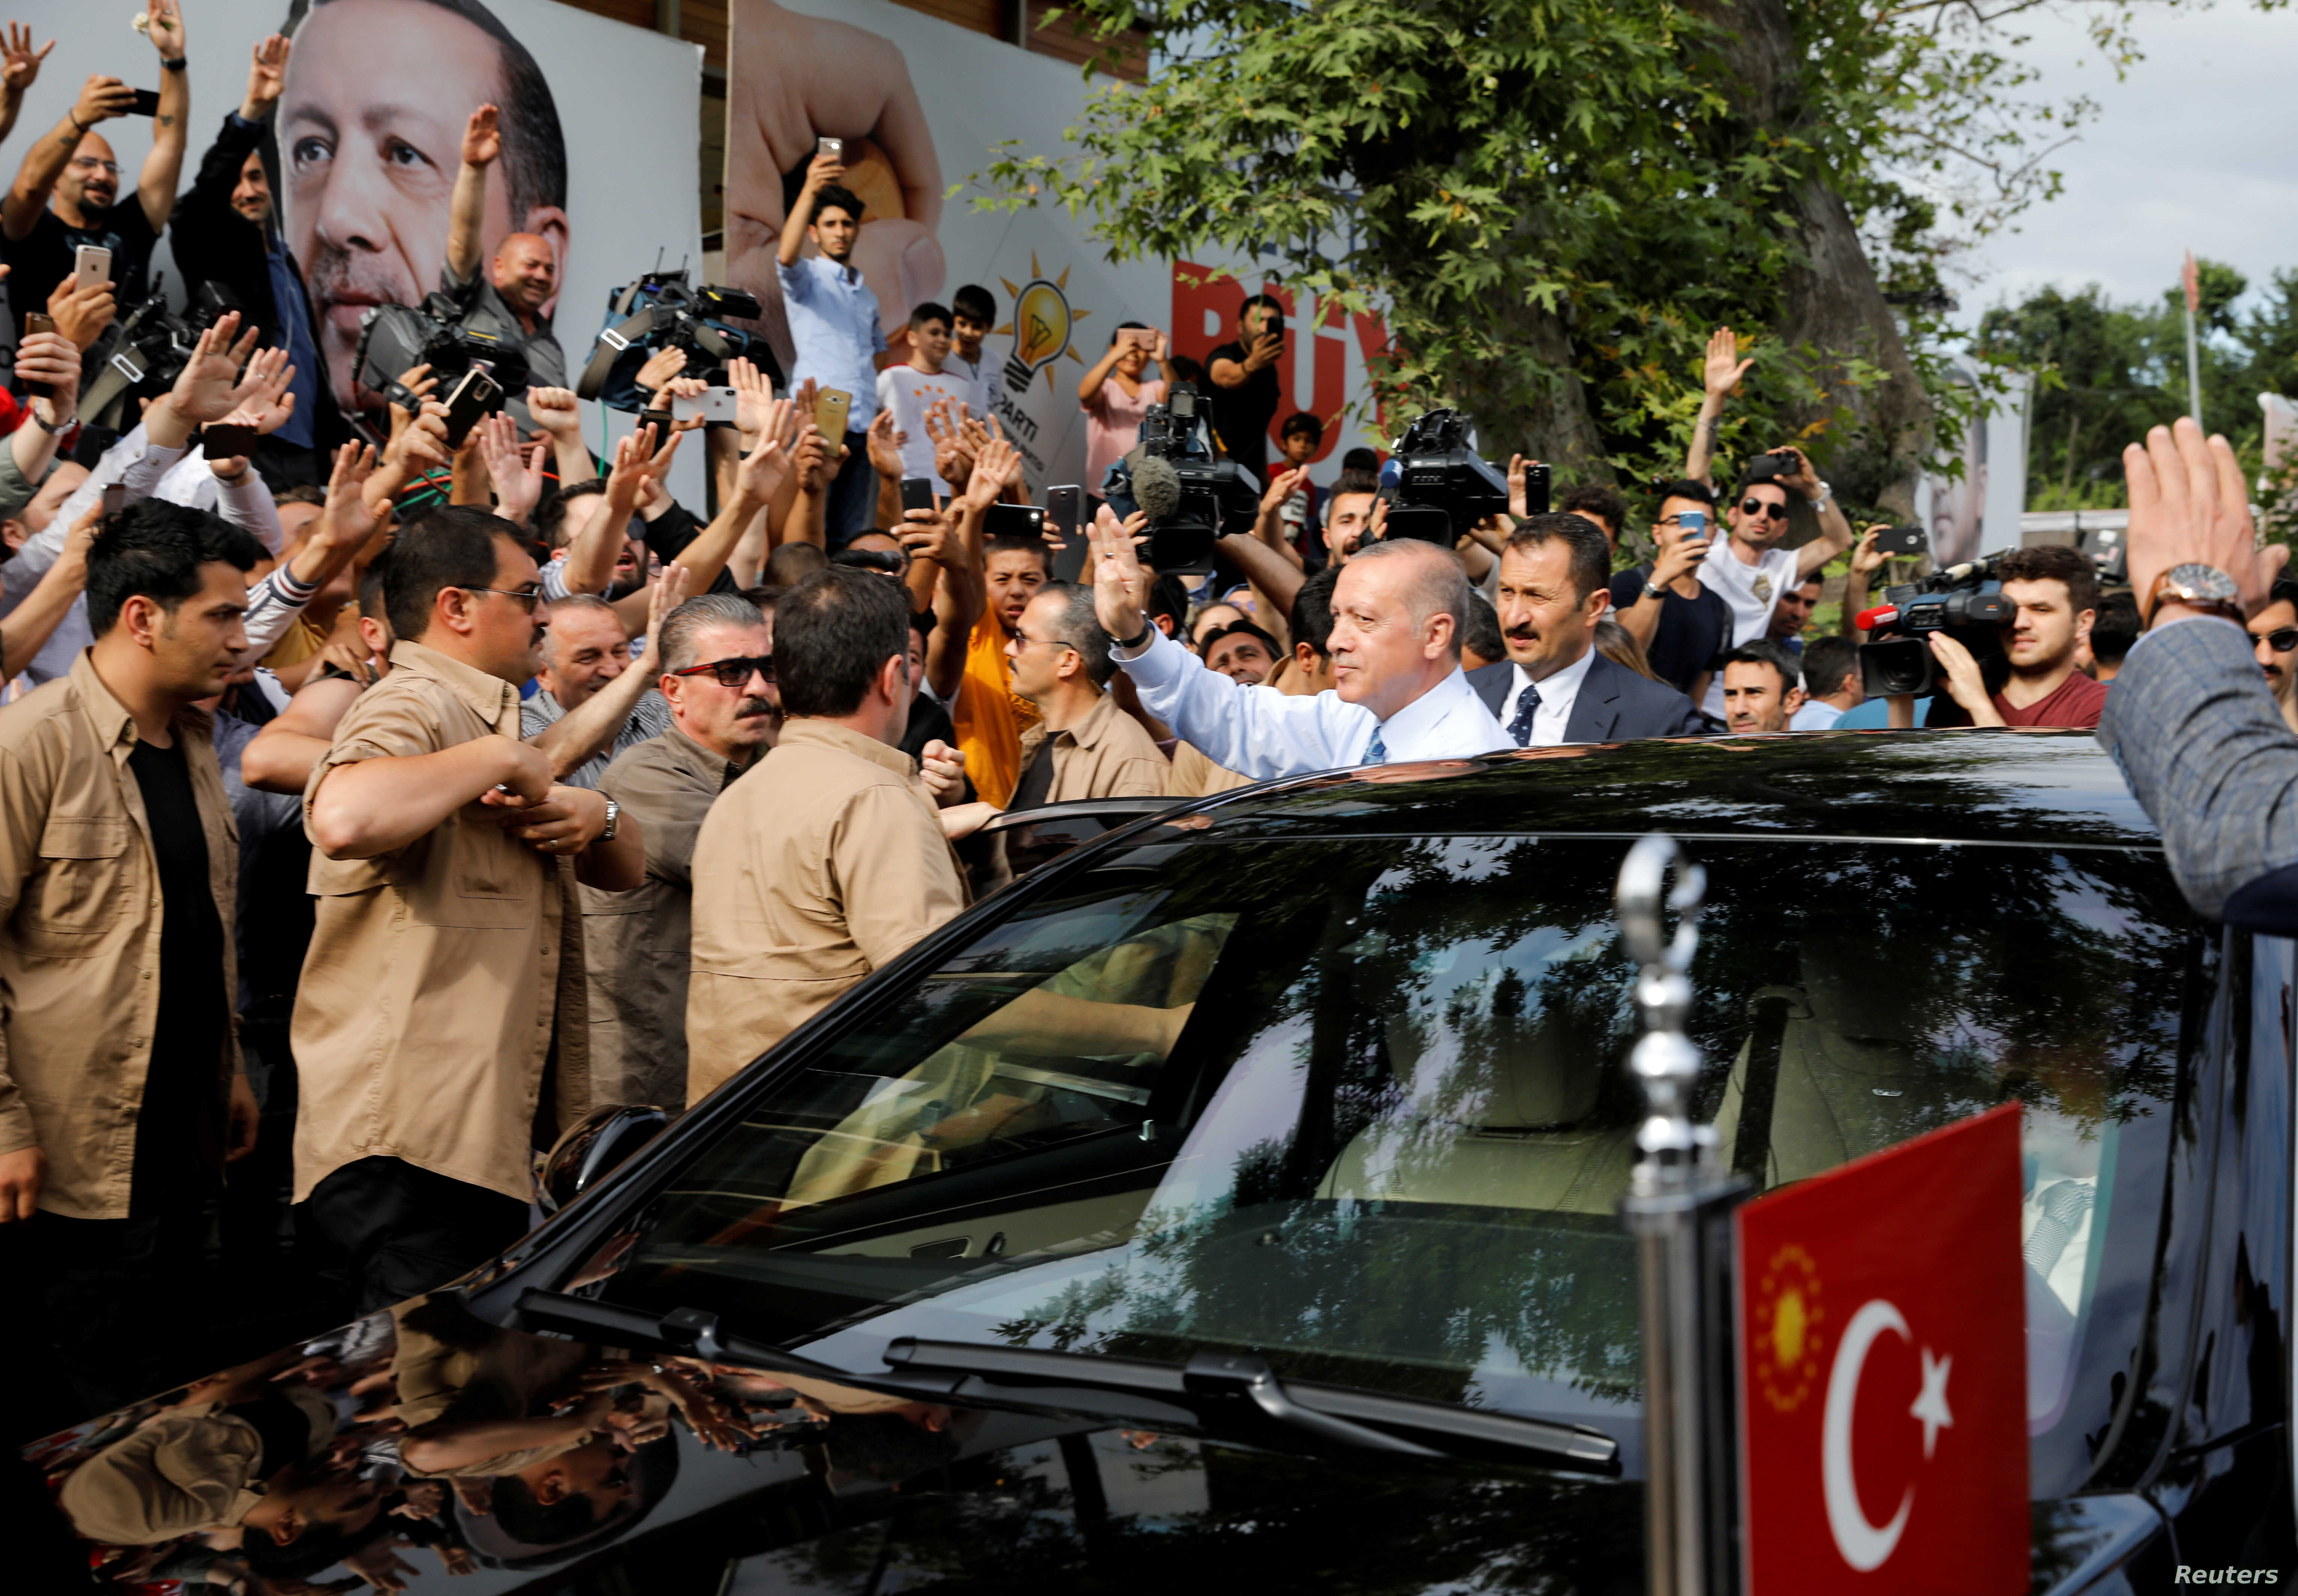 Turkish President Tayyip Erdogan waves to supporters as he leaves his residence in Istanbul, Turkey, June 24, 2018.